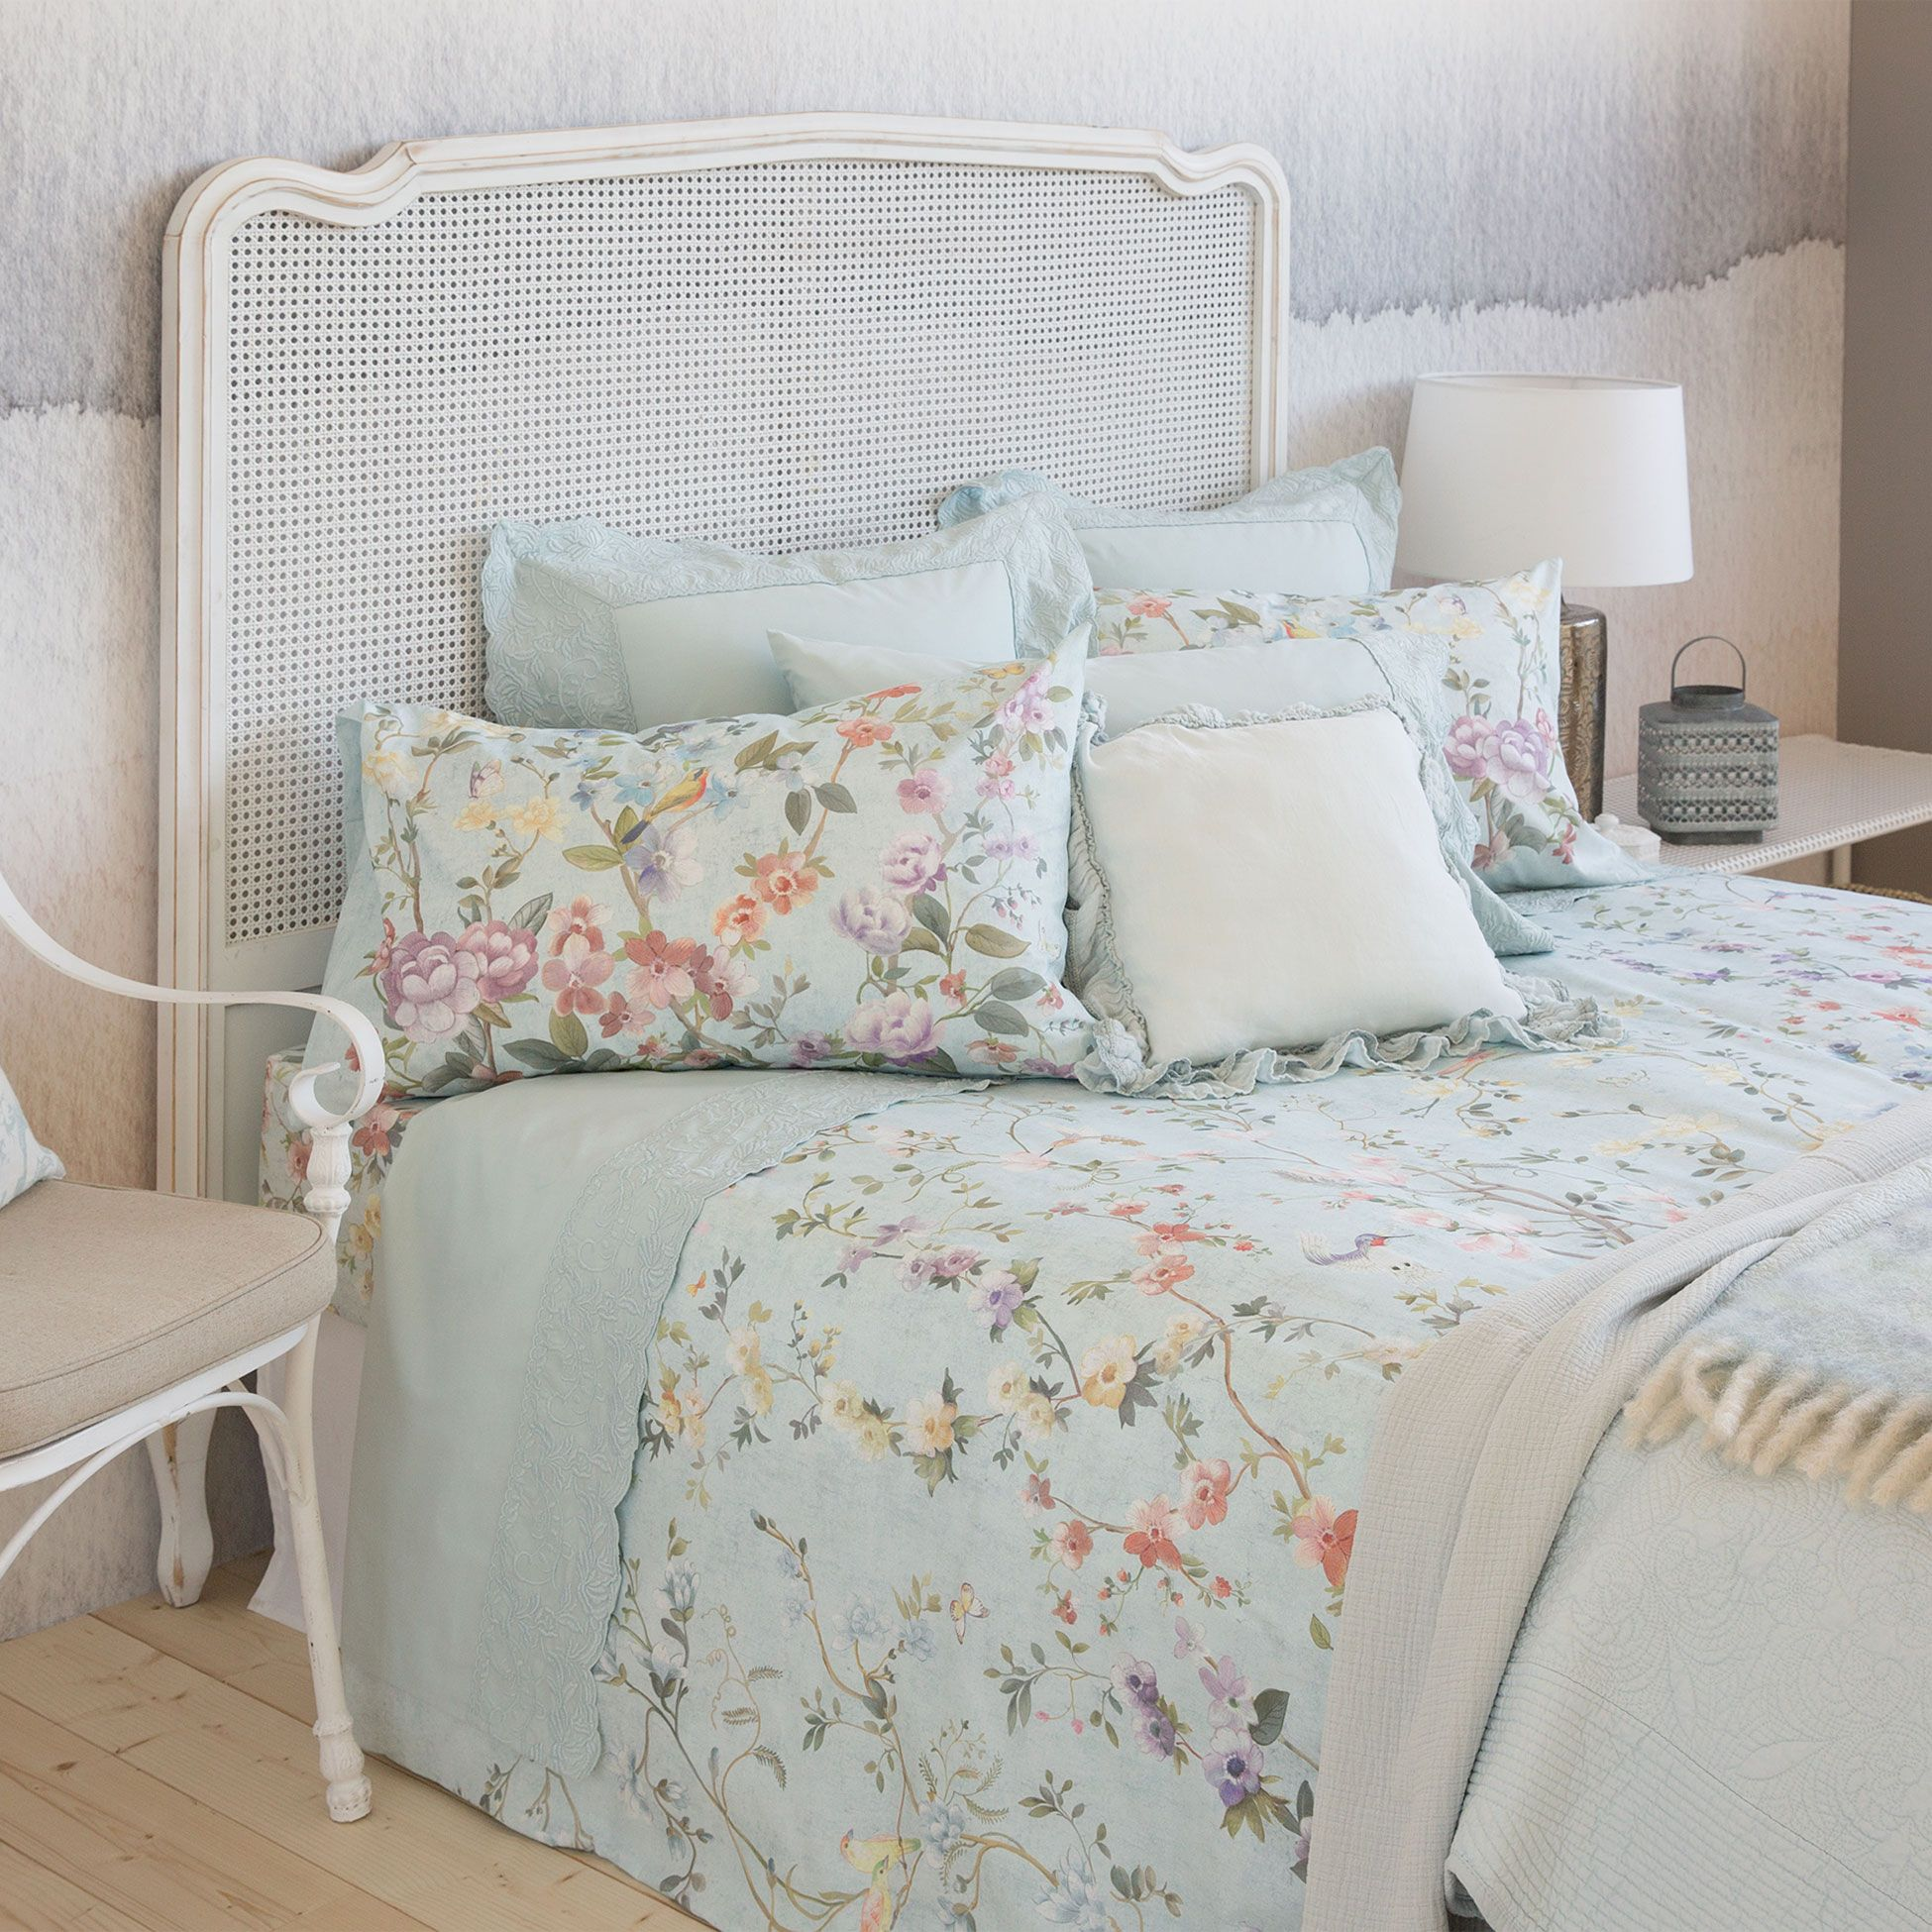 floral print bedding bedding bedroom zara home united states dise o de interiores. Black Bedroom Furniture Sets. Home Design Ideas